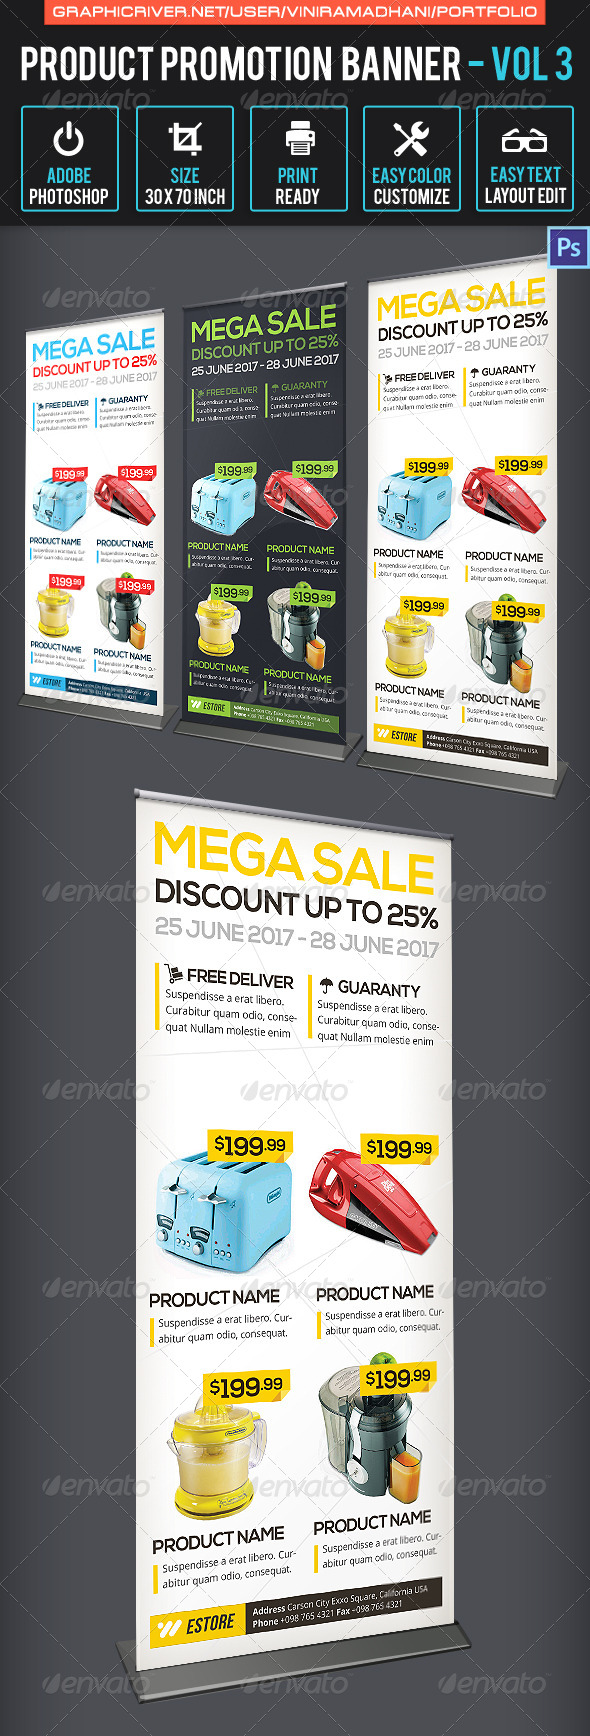 GraphicRiver Product Promotion Banner Volume 3 7019658